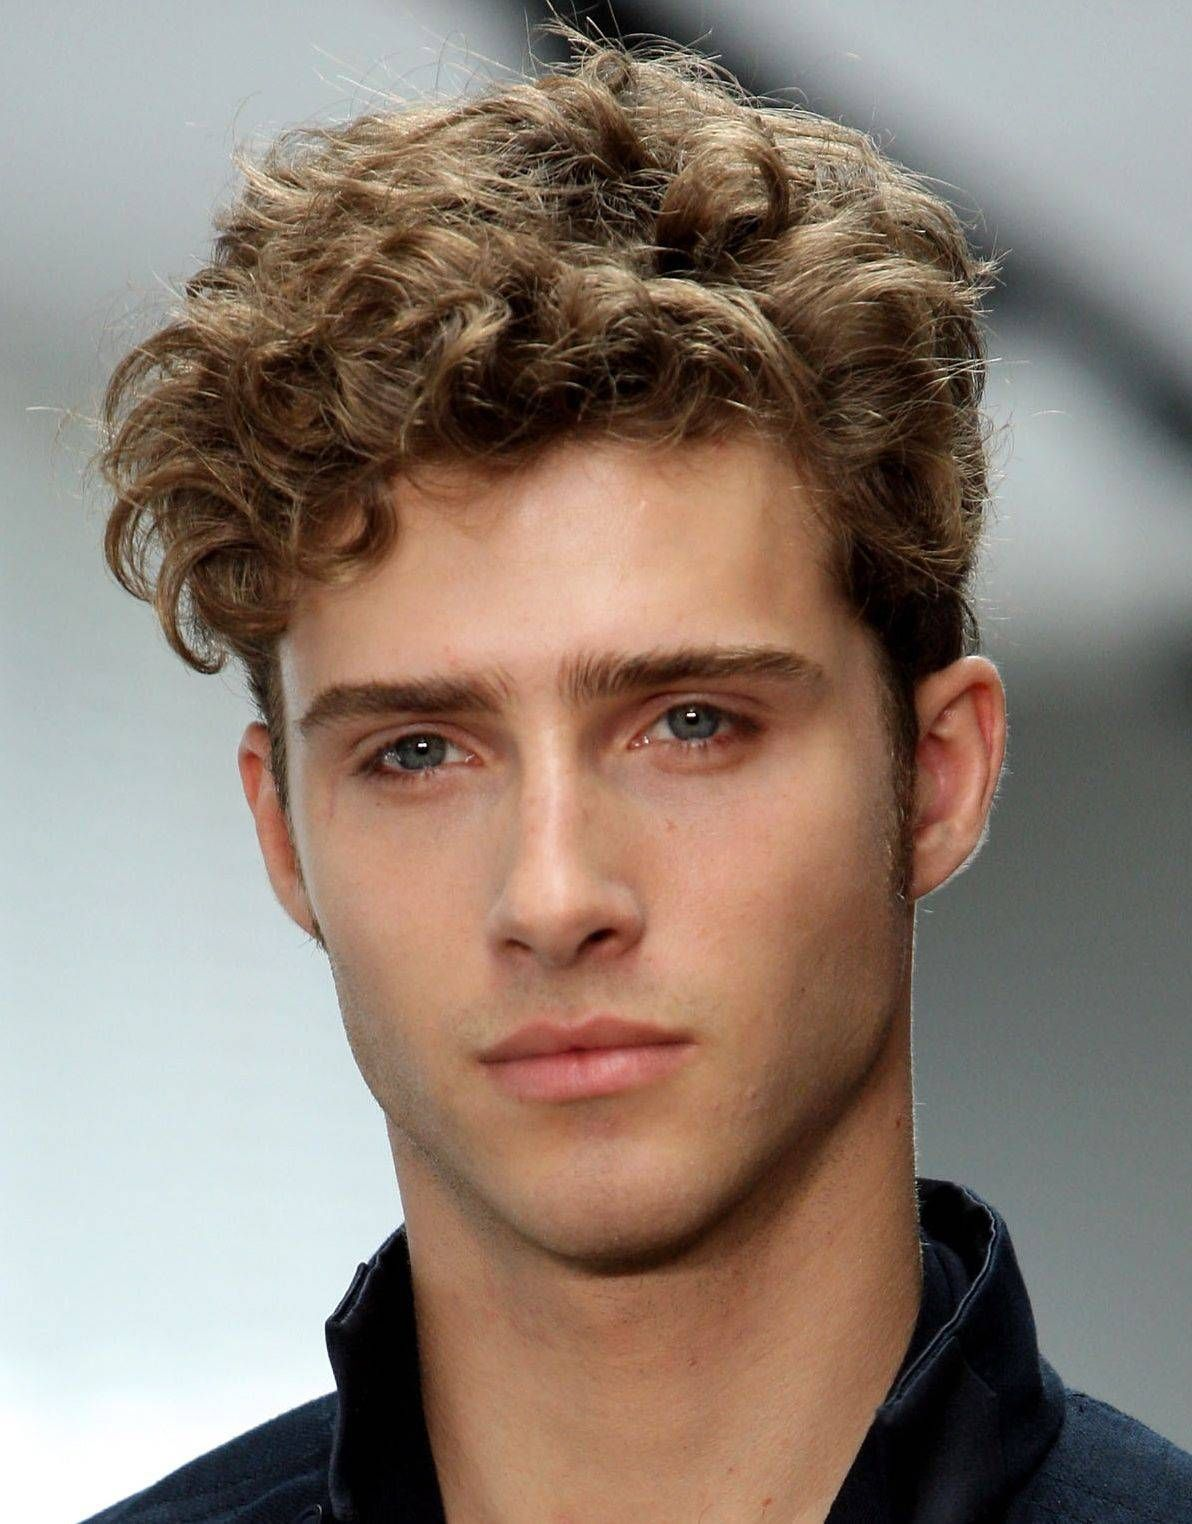 Hairstyle For Curly Hair Male Prepossessing Hairstyles For Men